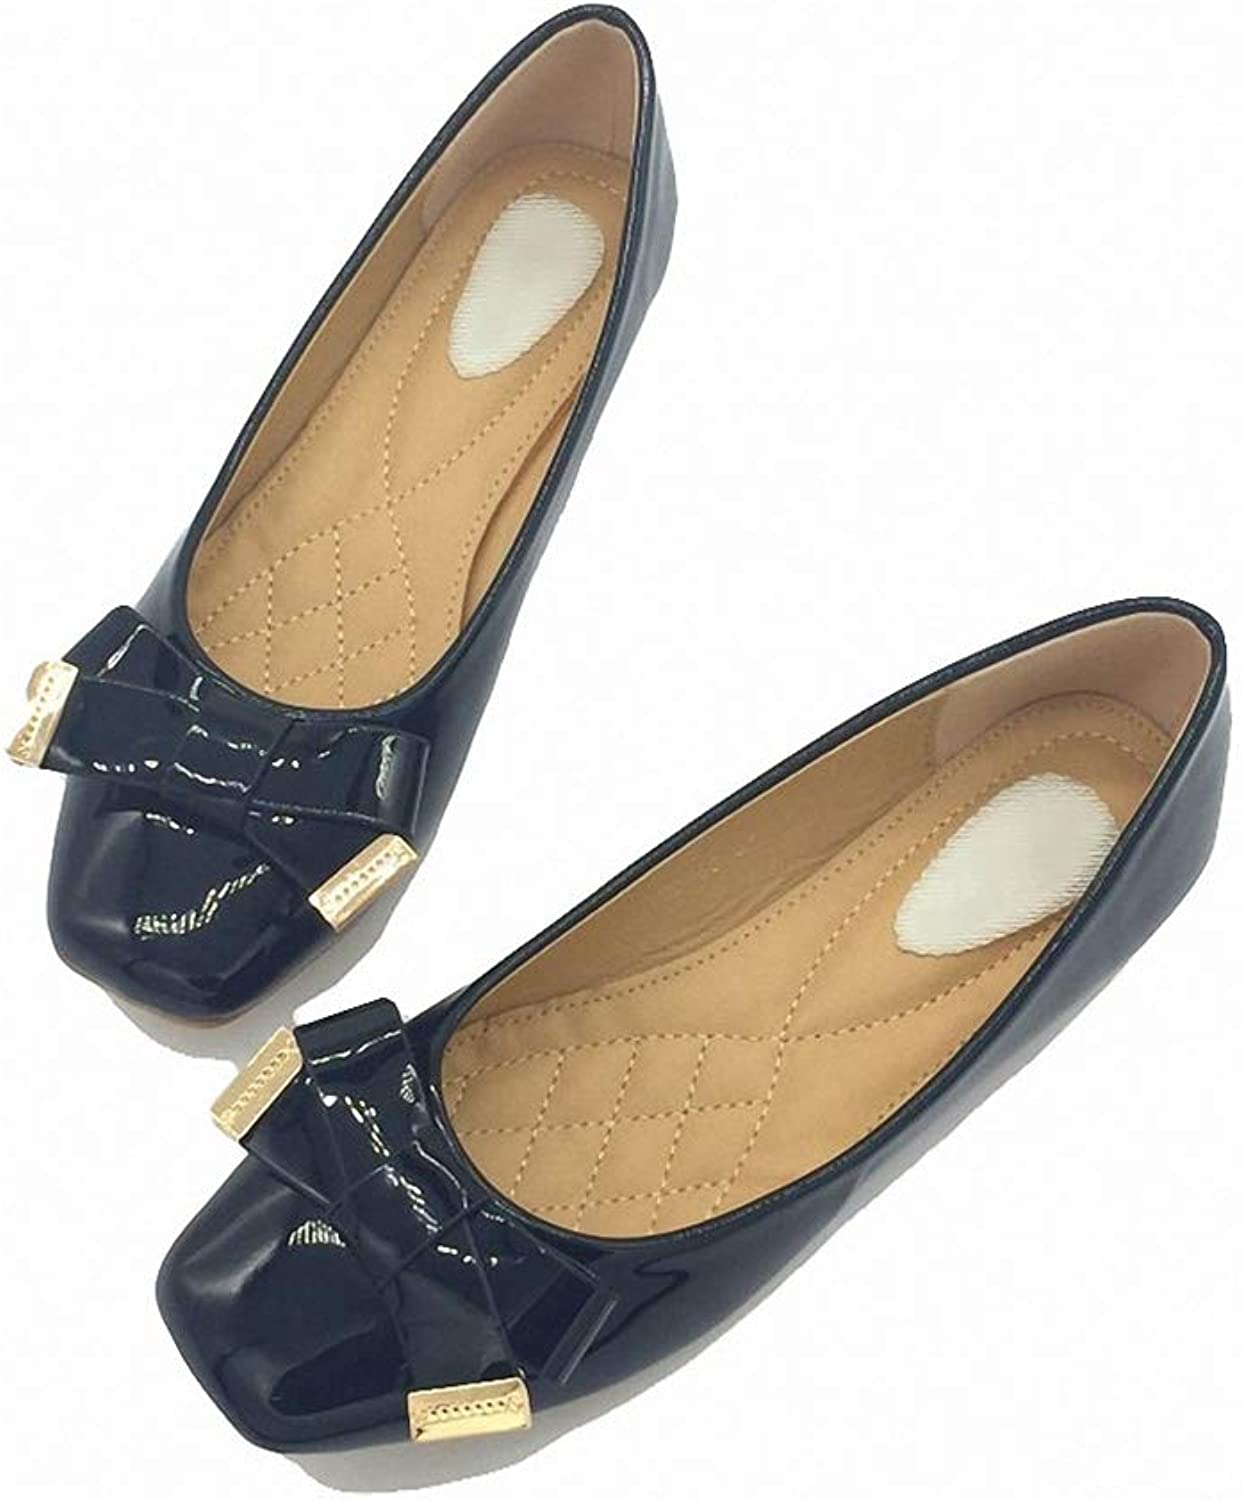 August Jim Women Flats shoes,Slip-On Square Toe Butterfly Knot Comfort Single shoes